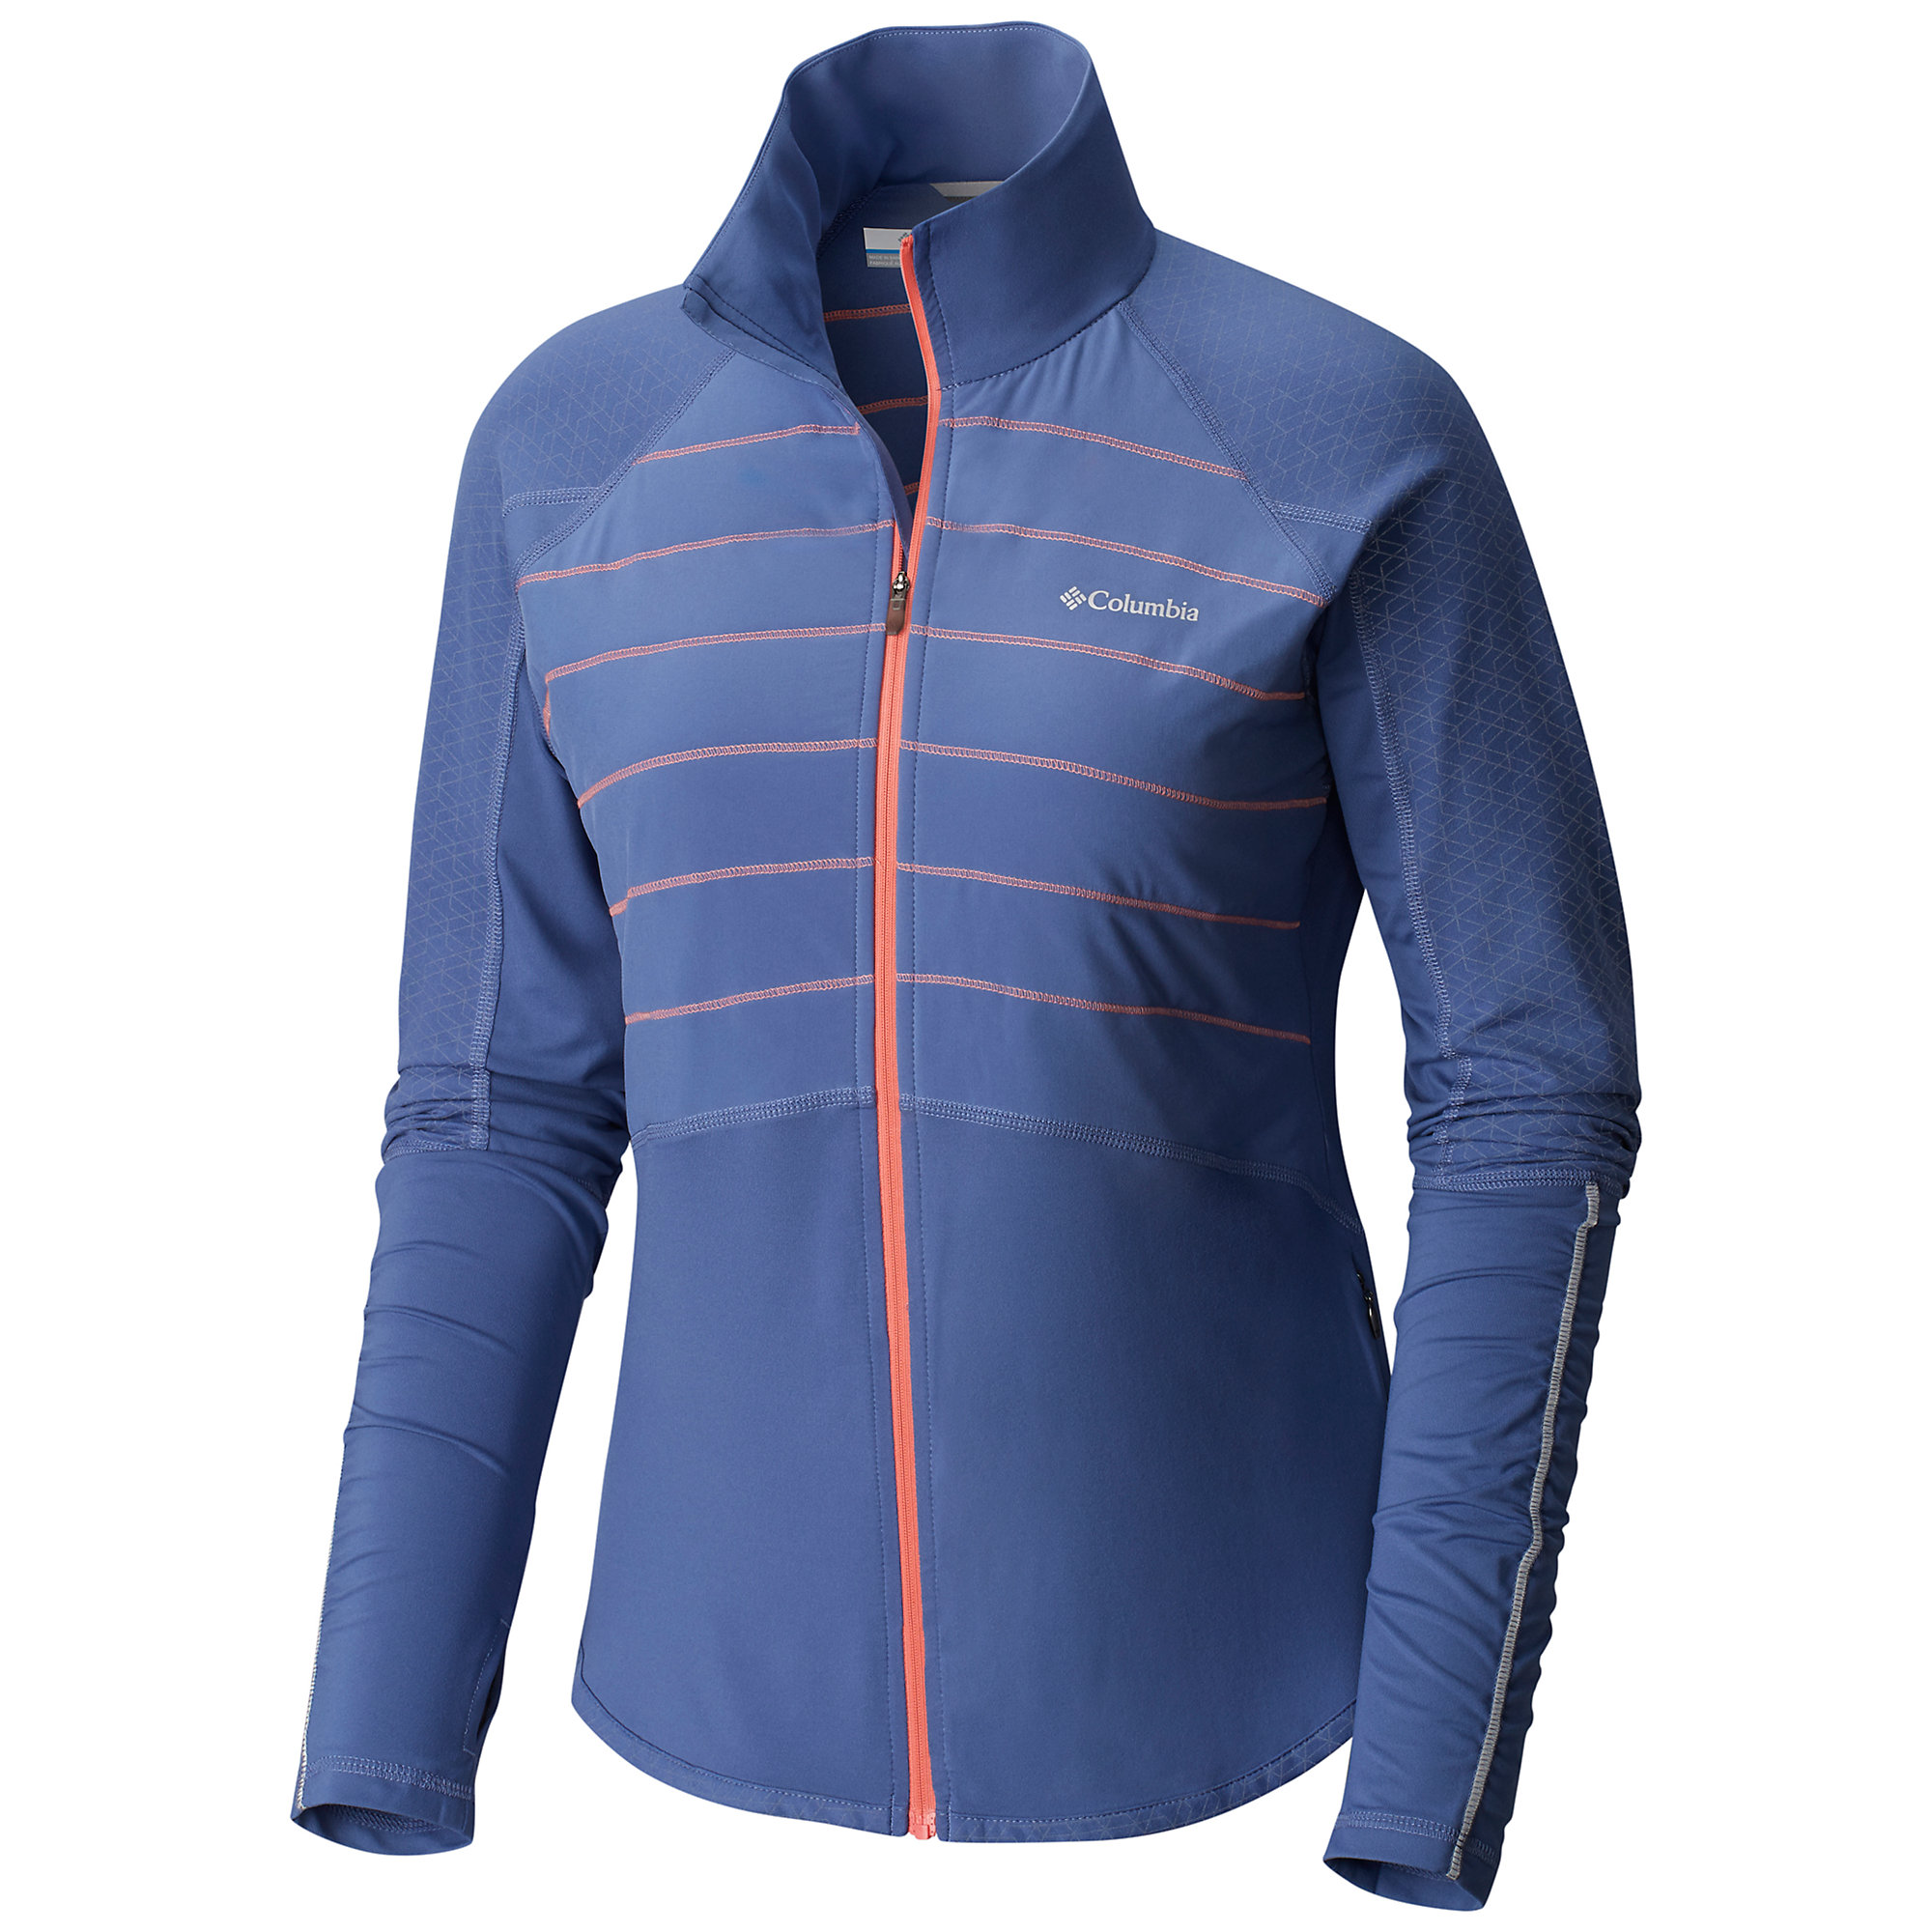 Columbia Trail Flash Hybrid Jacket